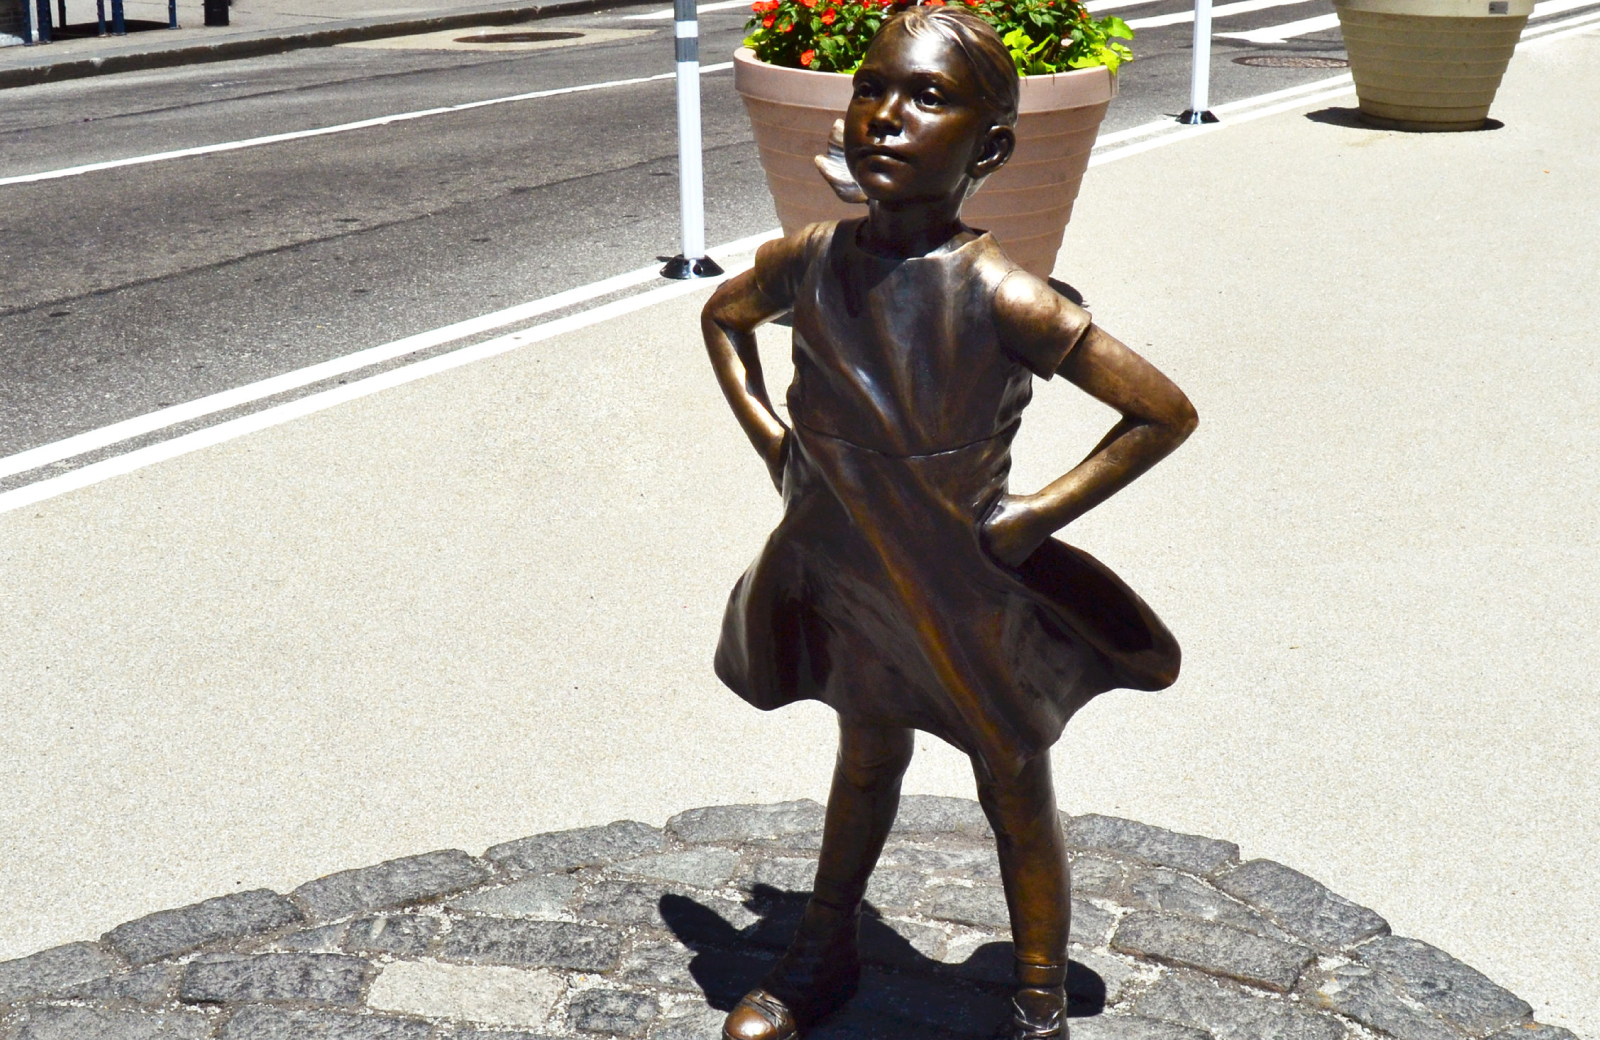 fearless girl bronze sculpture - 15 Cliff financial district apartments